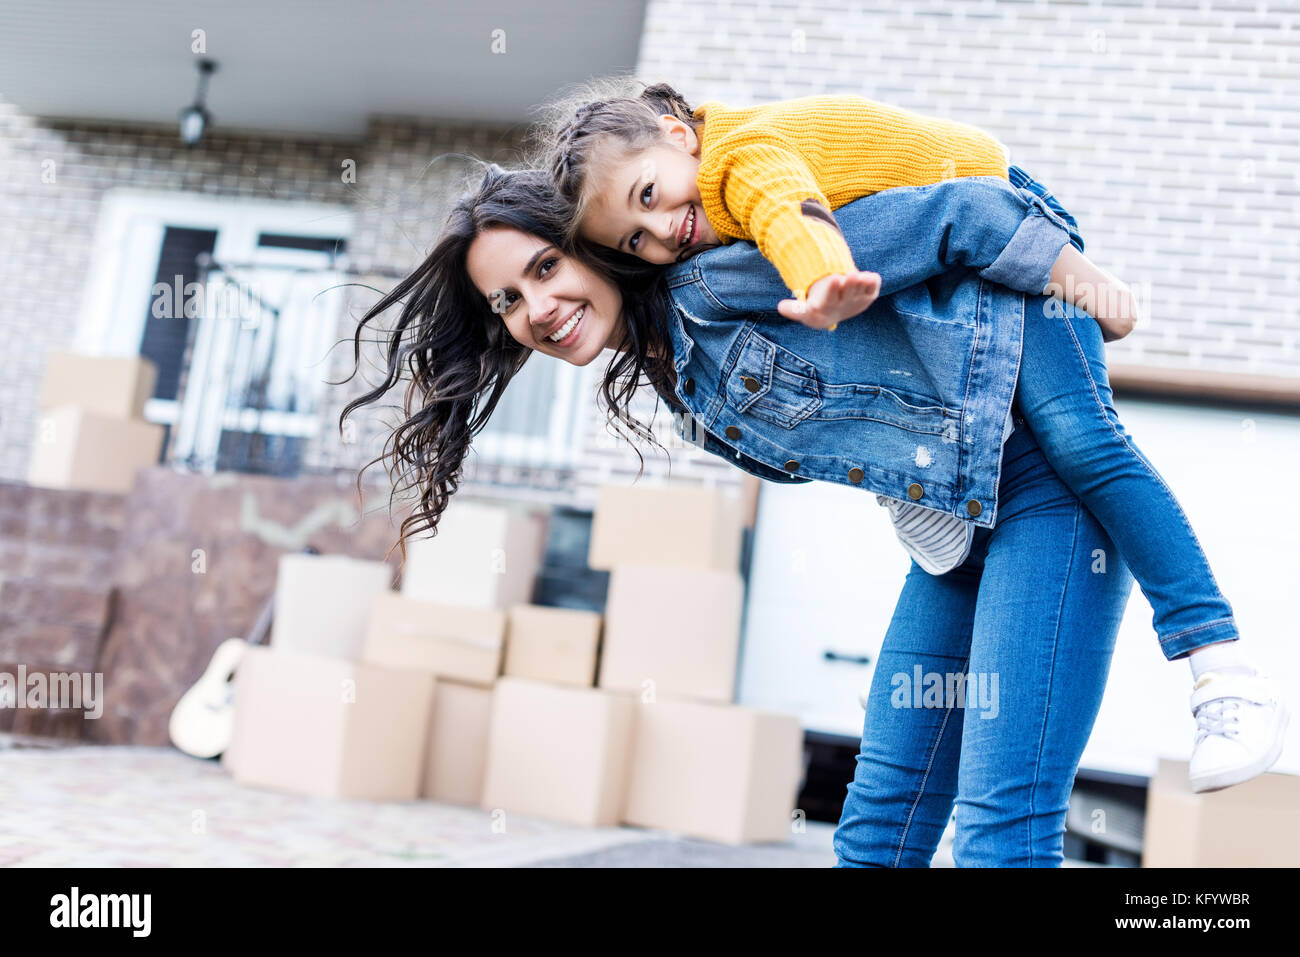 daughter piggyback riding mother - Stock Image